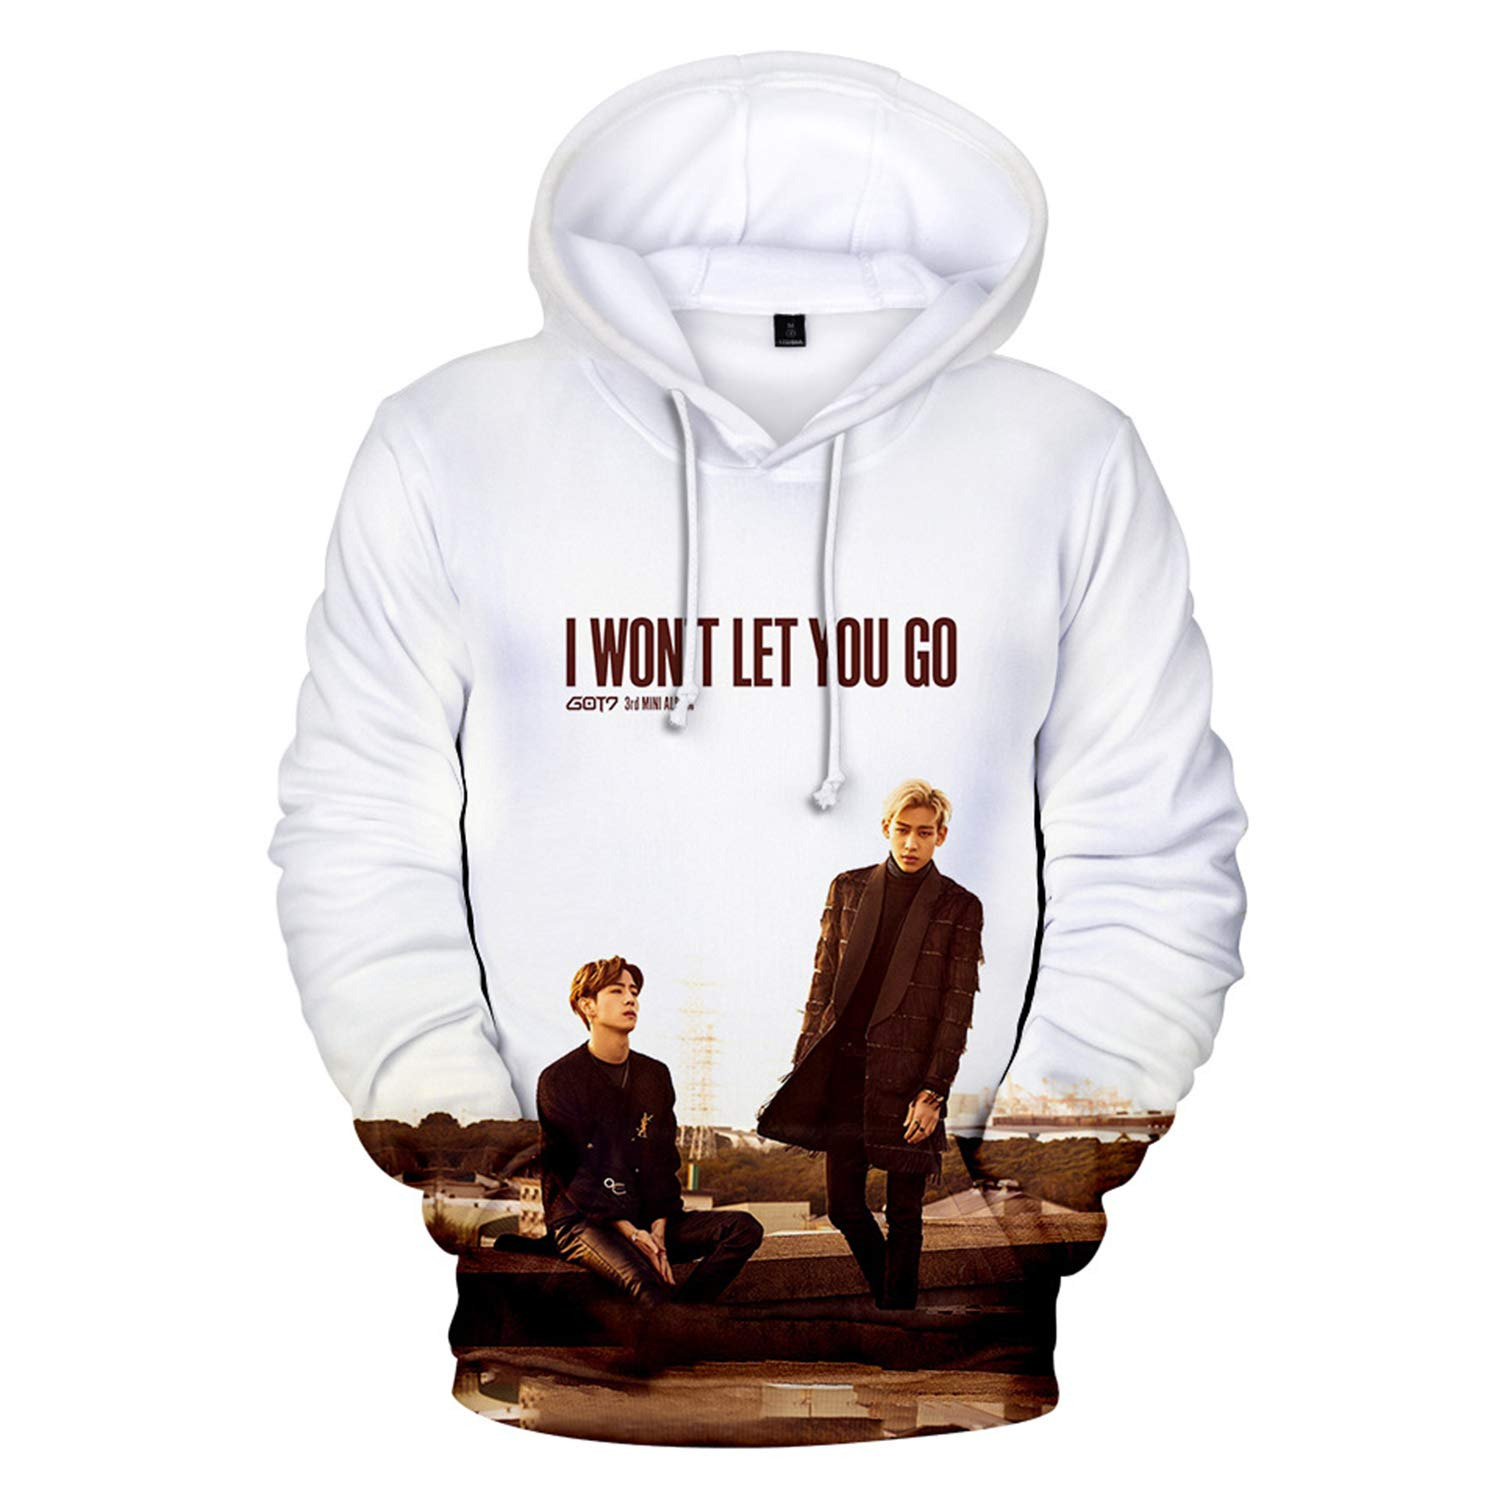 CHAIRAY Kpop Got7 I Wont Let You Go Hoodie Jackson Bambam Mark JB 3D Print Pullover Sweater